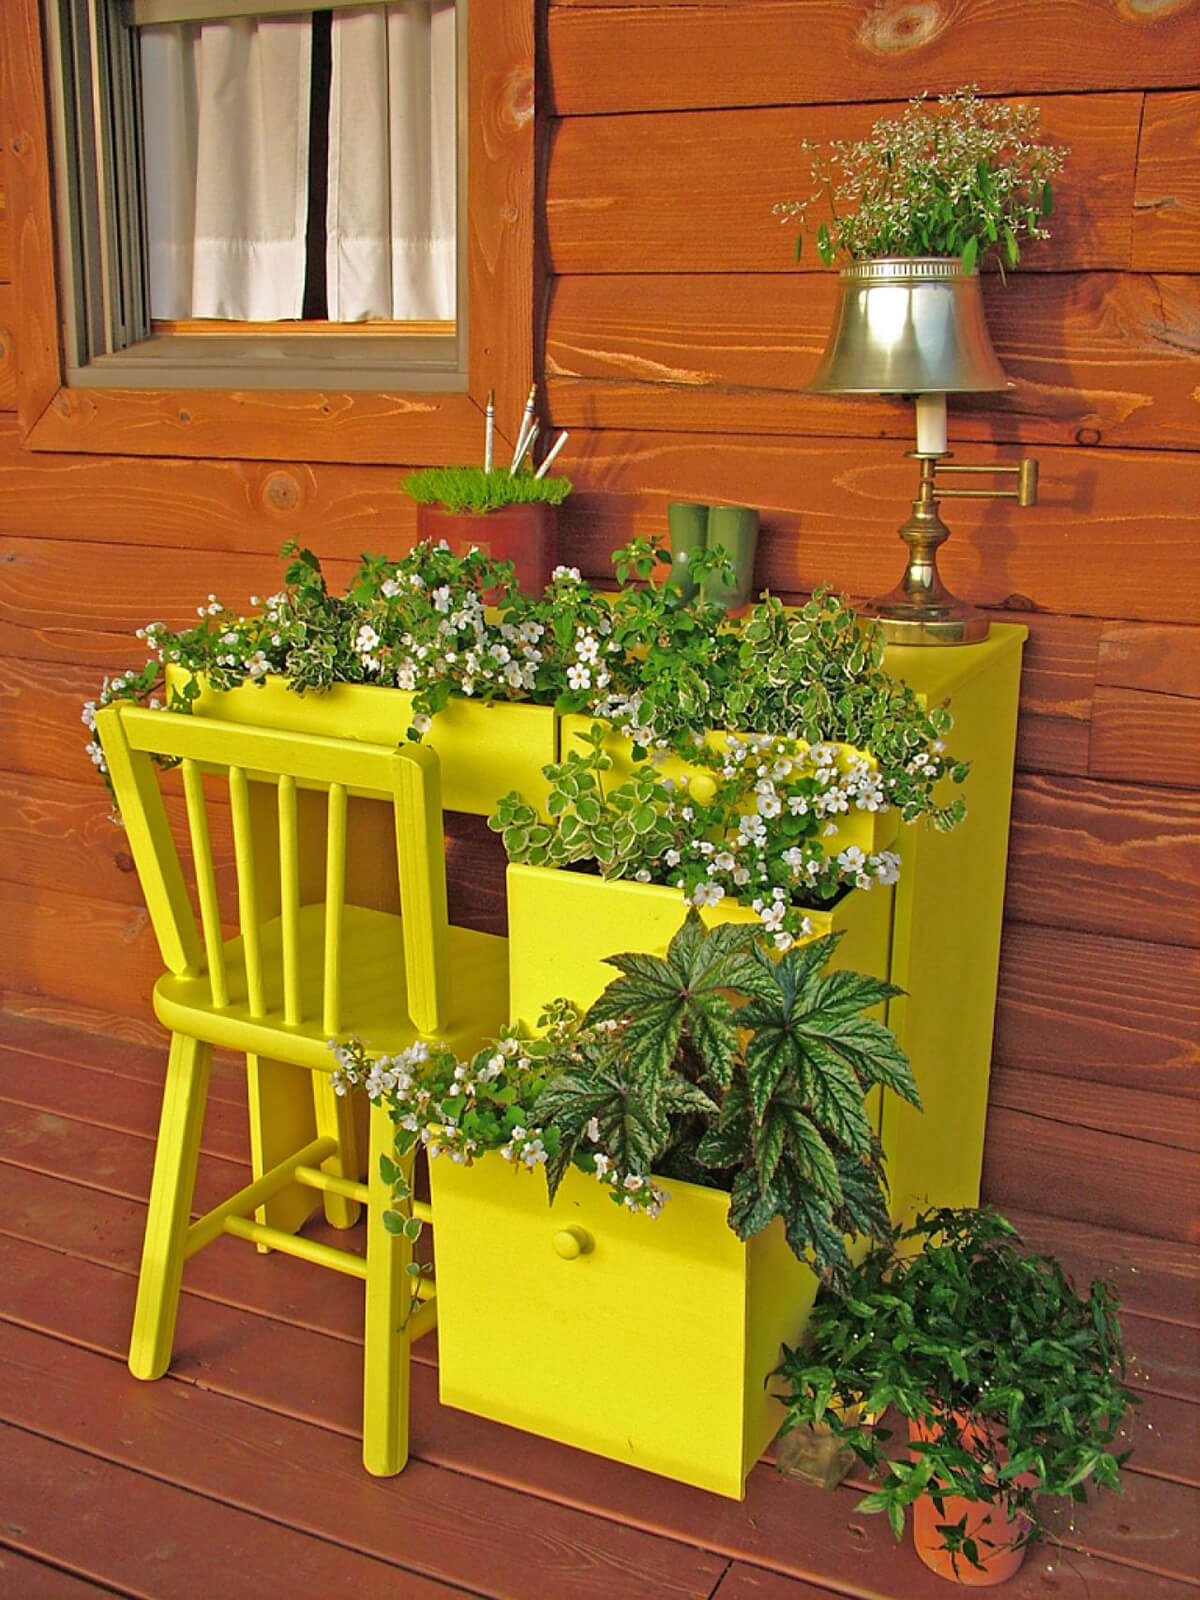 Bright Yellow Desk with Greens and Flowers